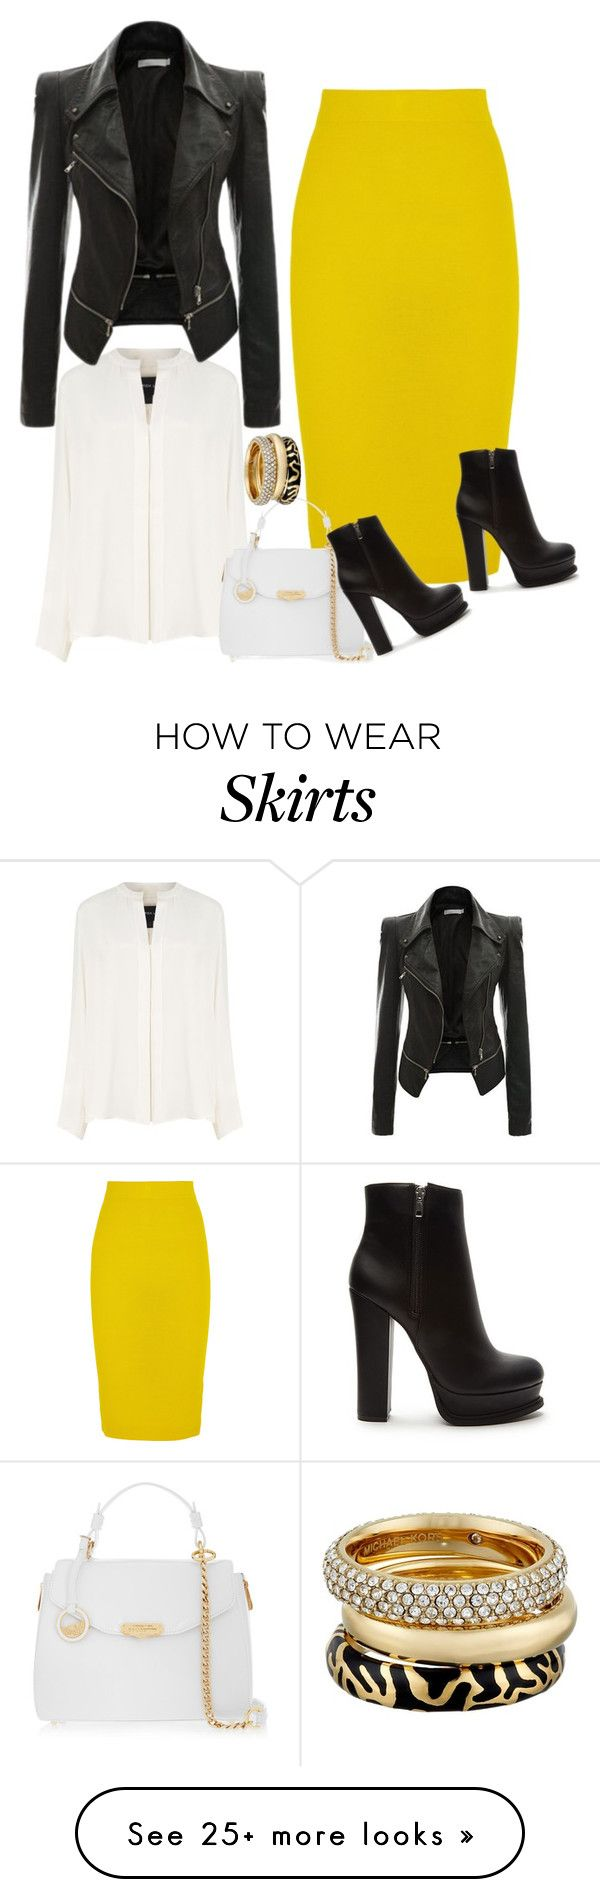 """J. Crew Yellow Wool Skirt"" by ladygroovenyc on Polyvore featuring Derek Lam, J.Crew, Versace, Forever 21 and Michael Kors"